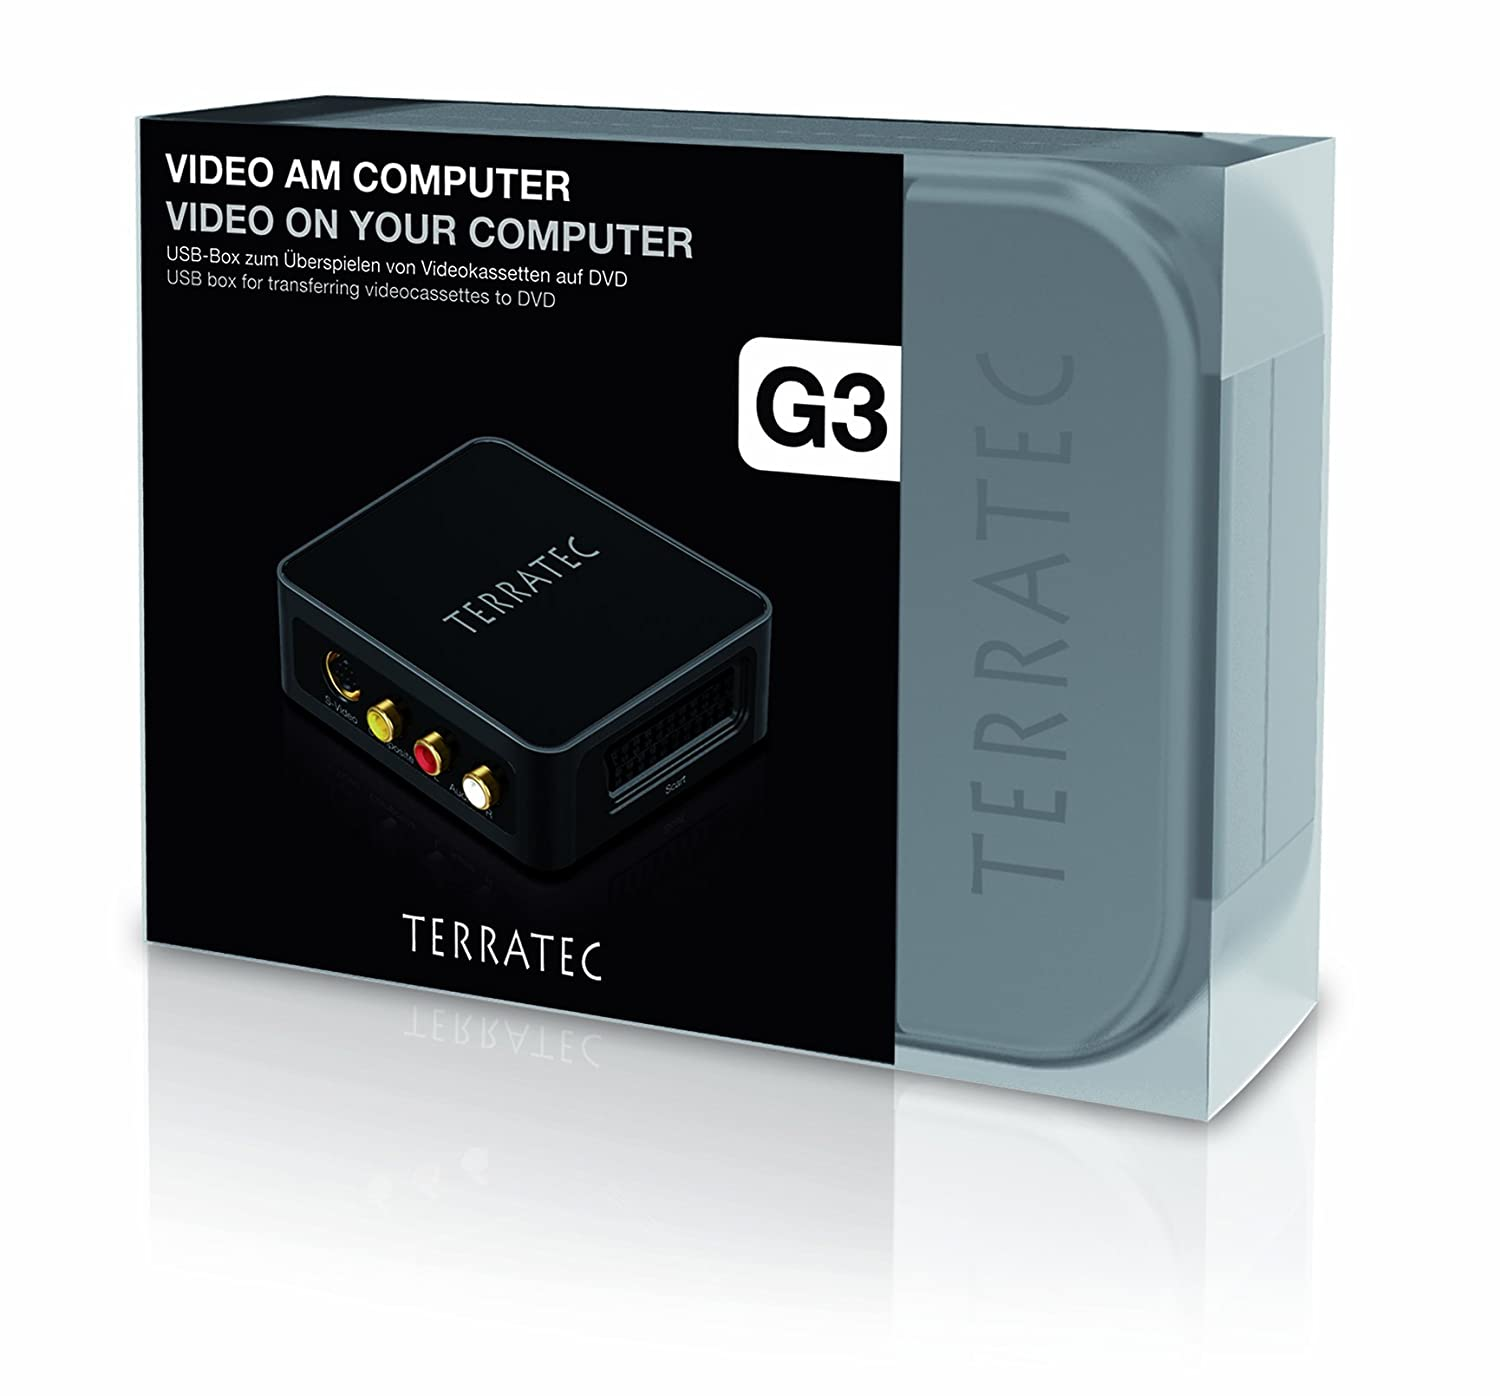 Amazon.com: Terratec G3 Digitalizador de vídeo con conector ...